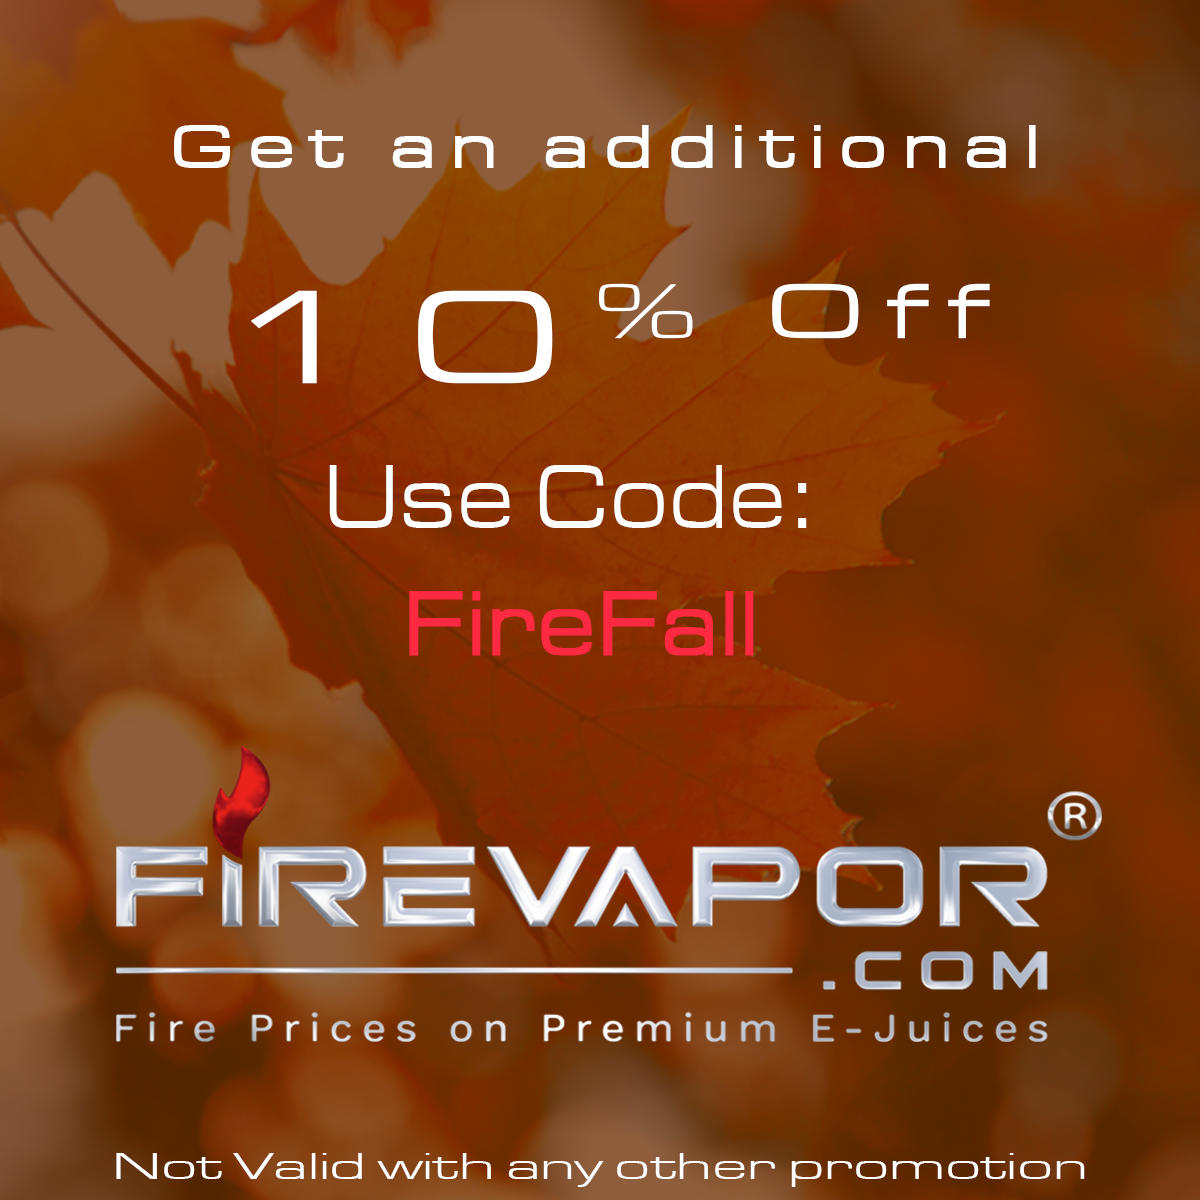 fire vapor deals, Coupon Code and offer